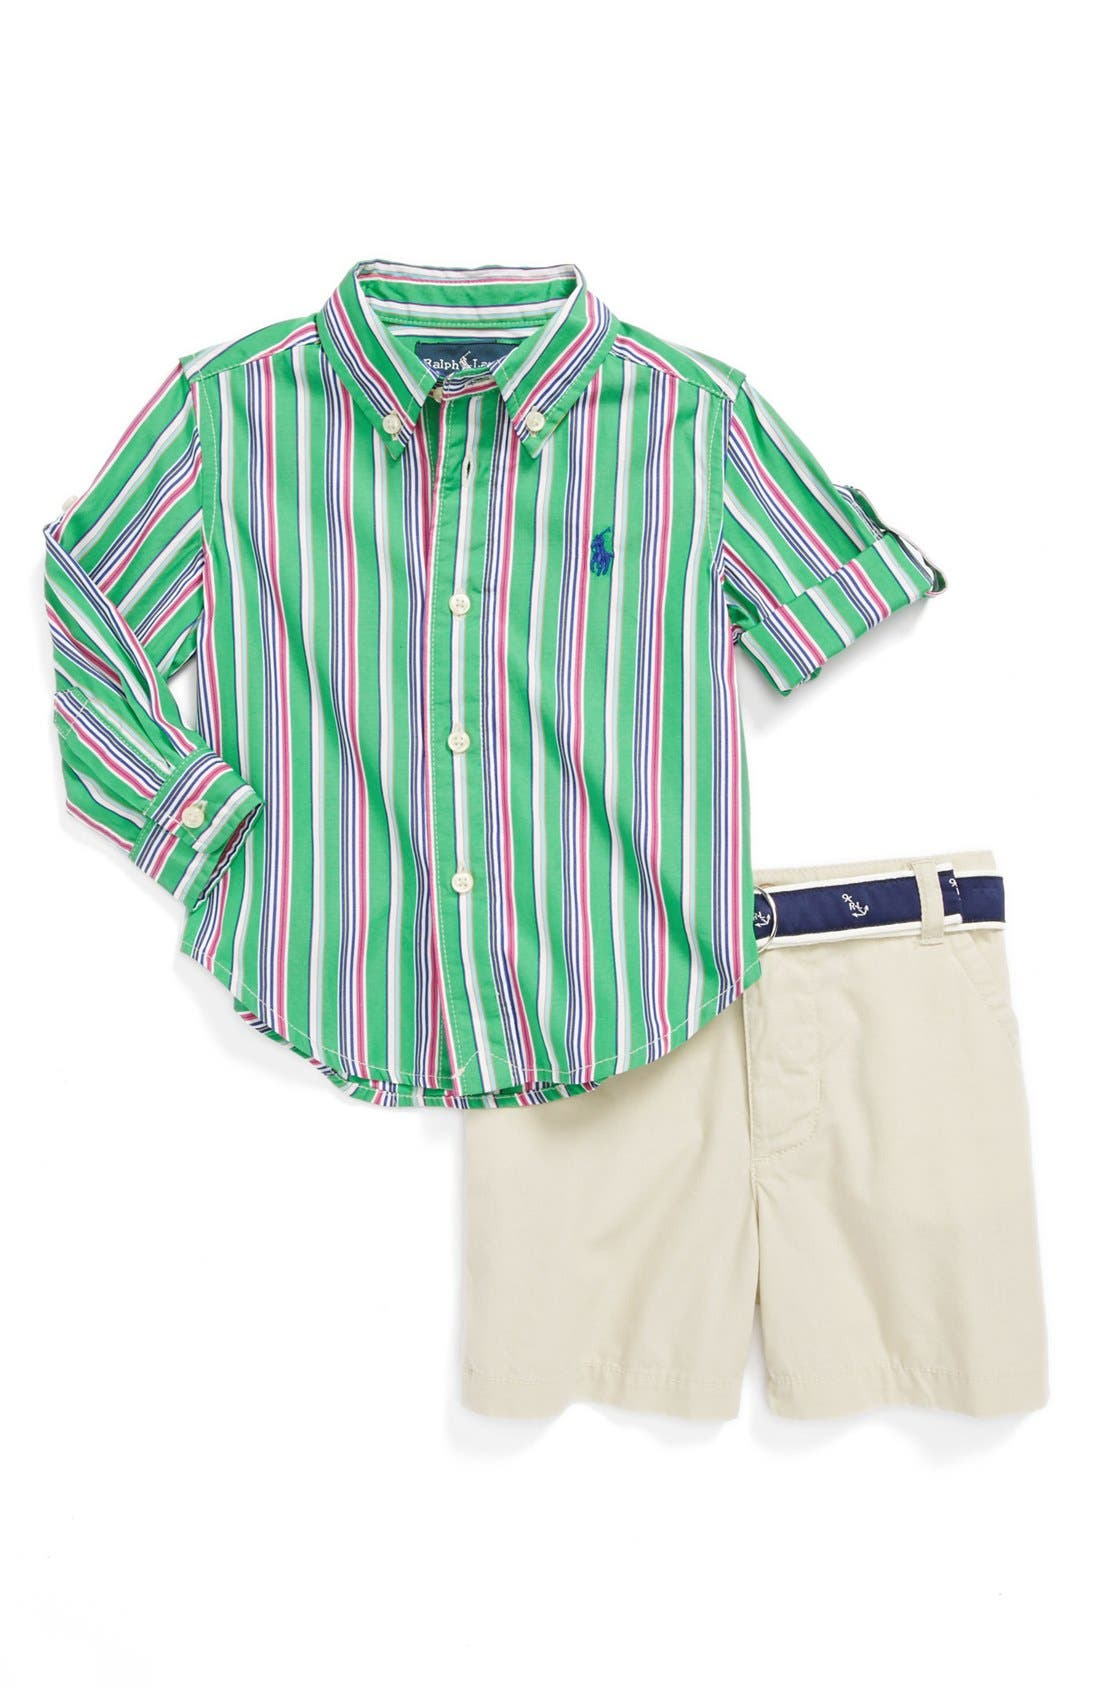 Alternate Image 1 Selected - Ralph Lauren Woven Shirt & Shorts (Baby Boys)